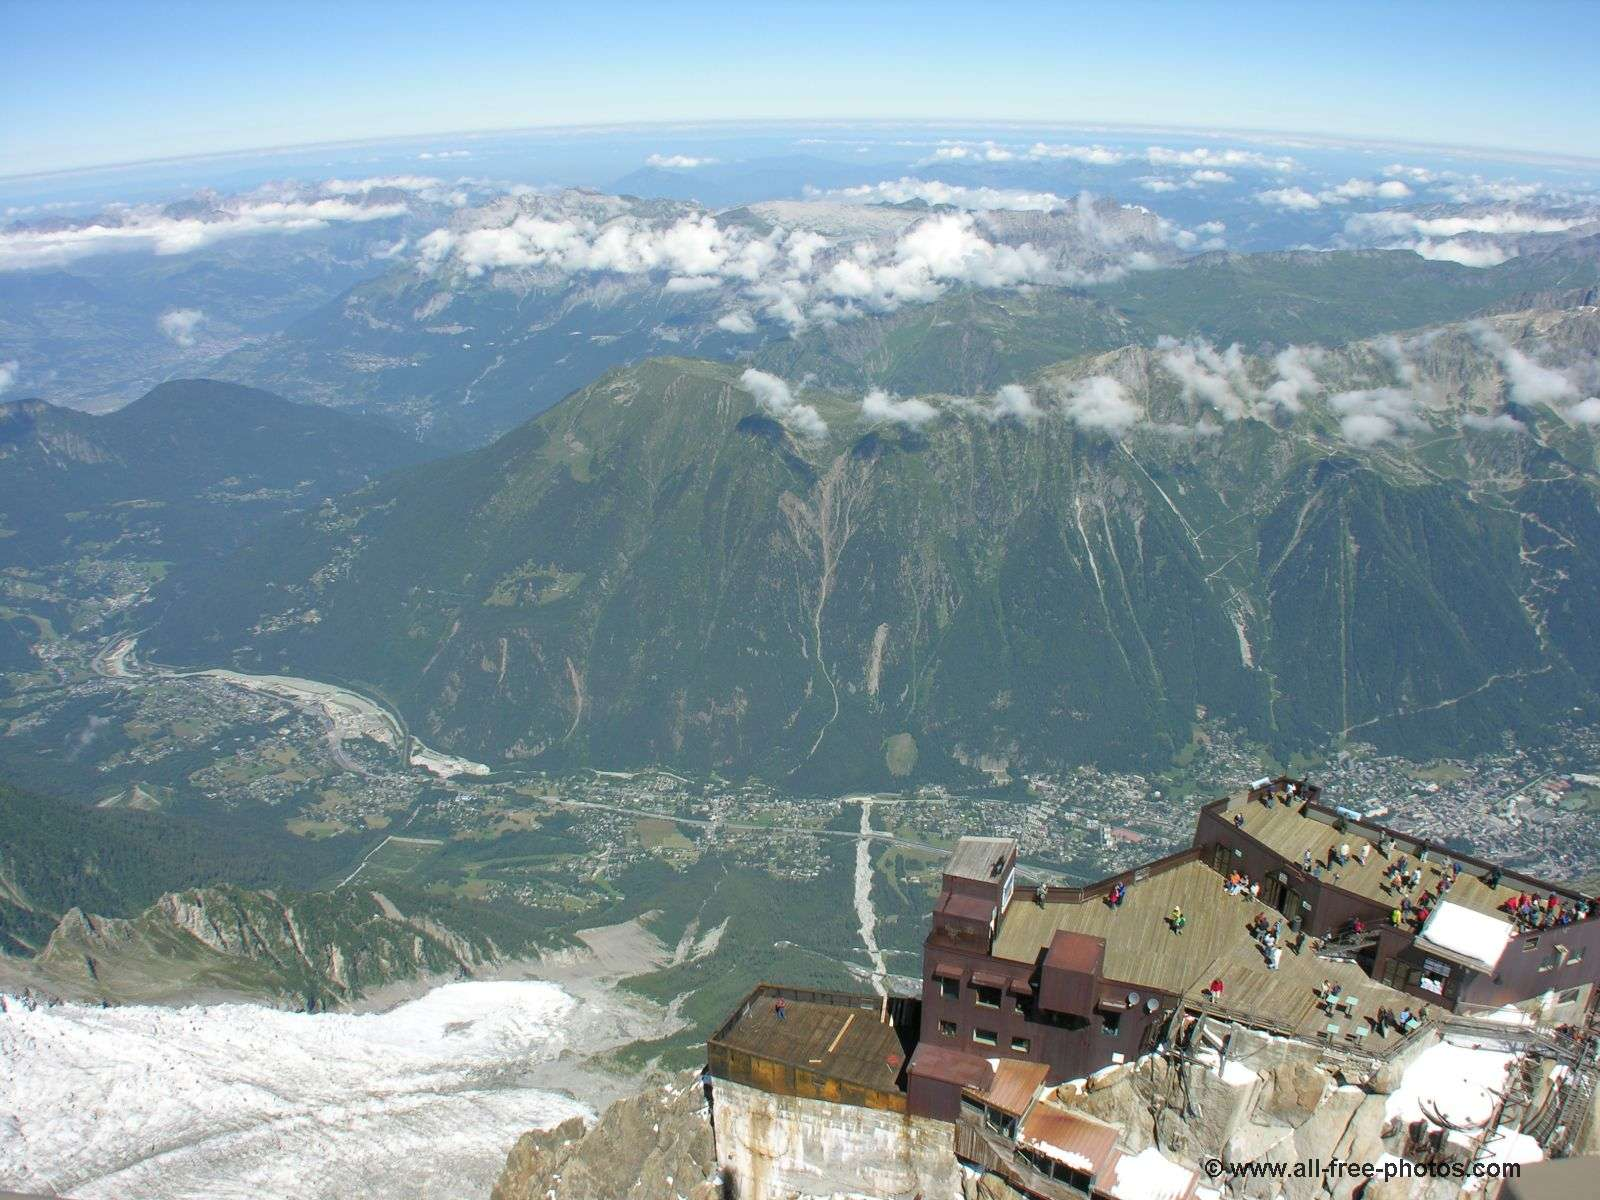 Aiguille du Midi - Lower platform and Chamonix valley - France